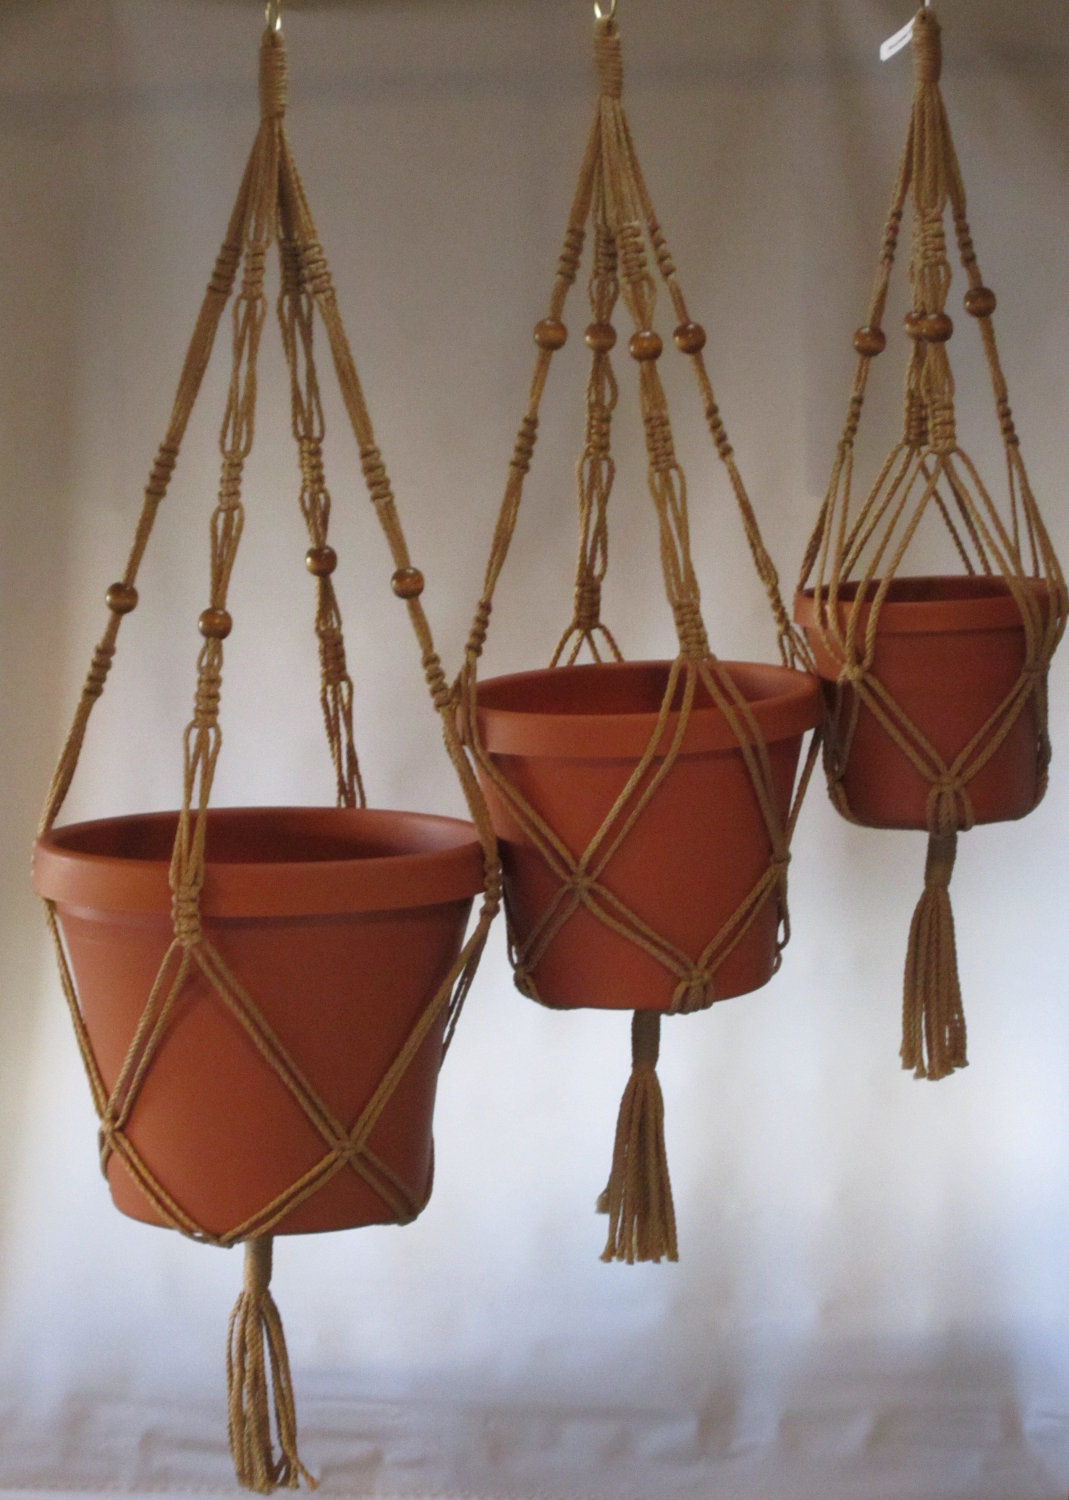 The Centric Home Macrame Revisited